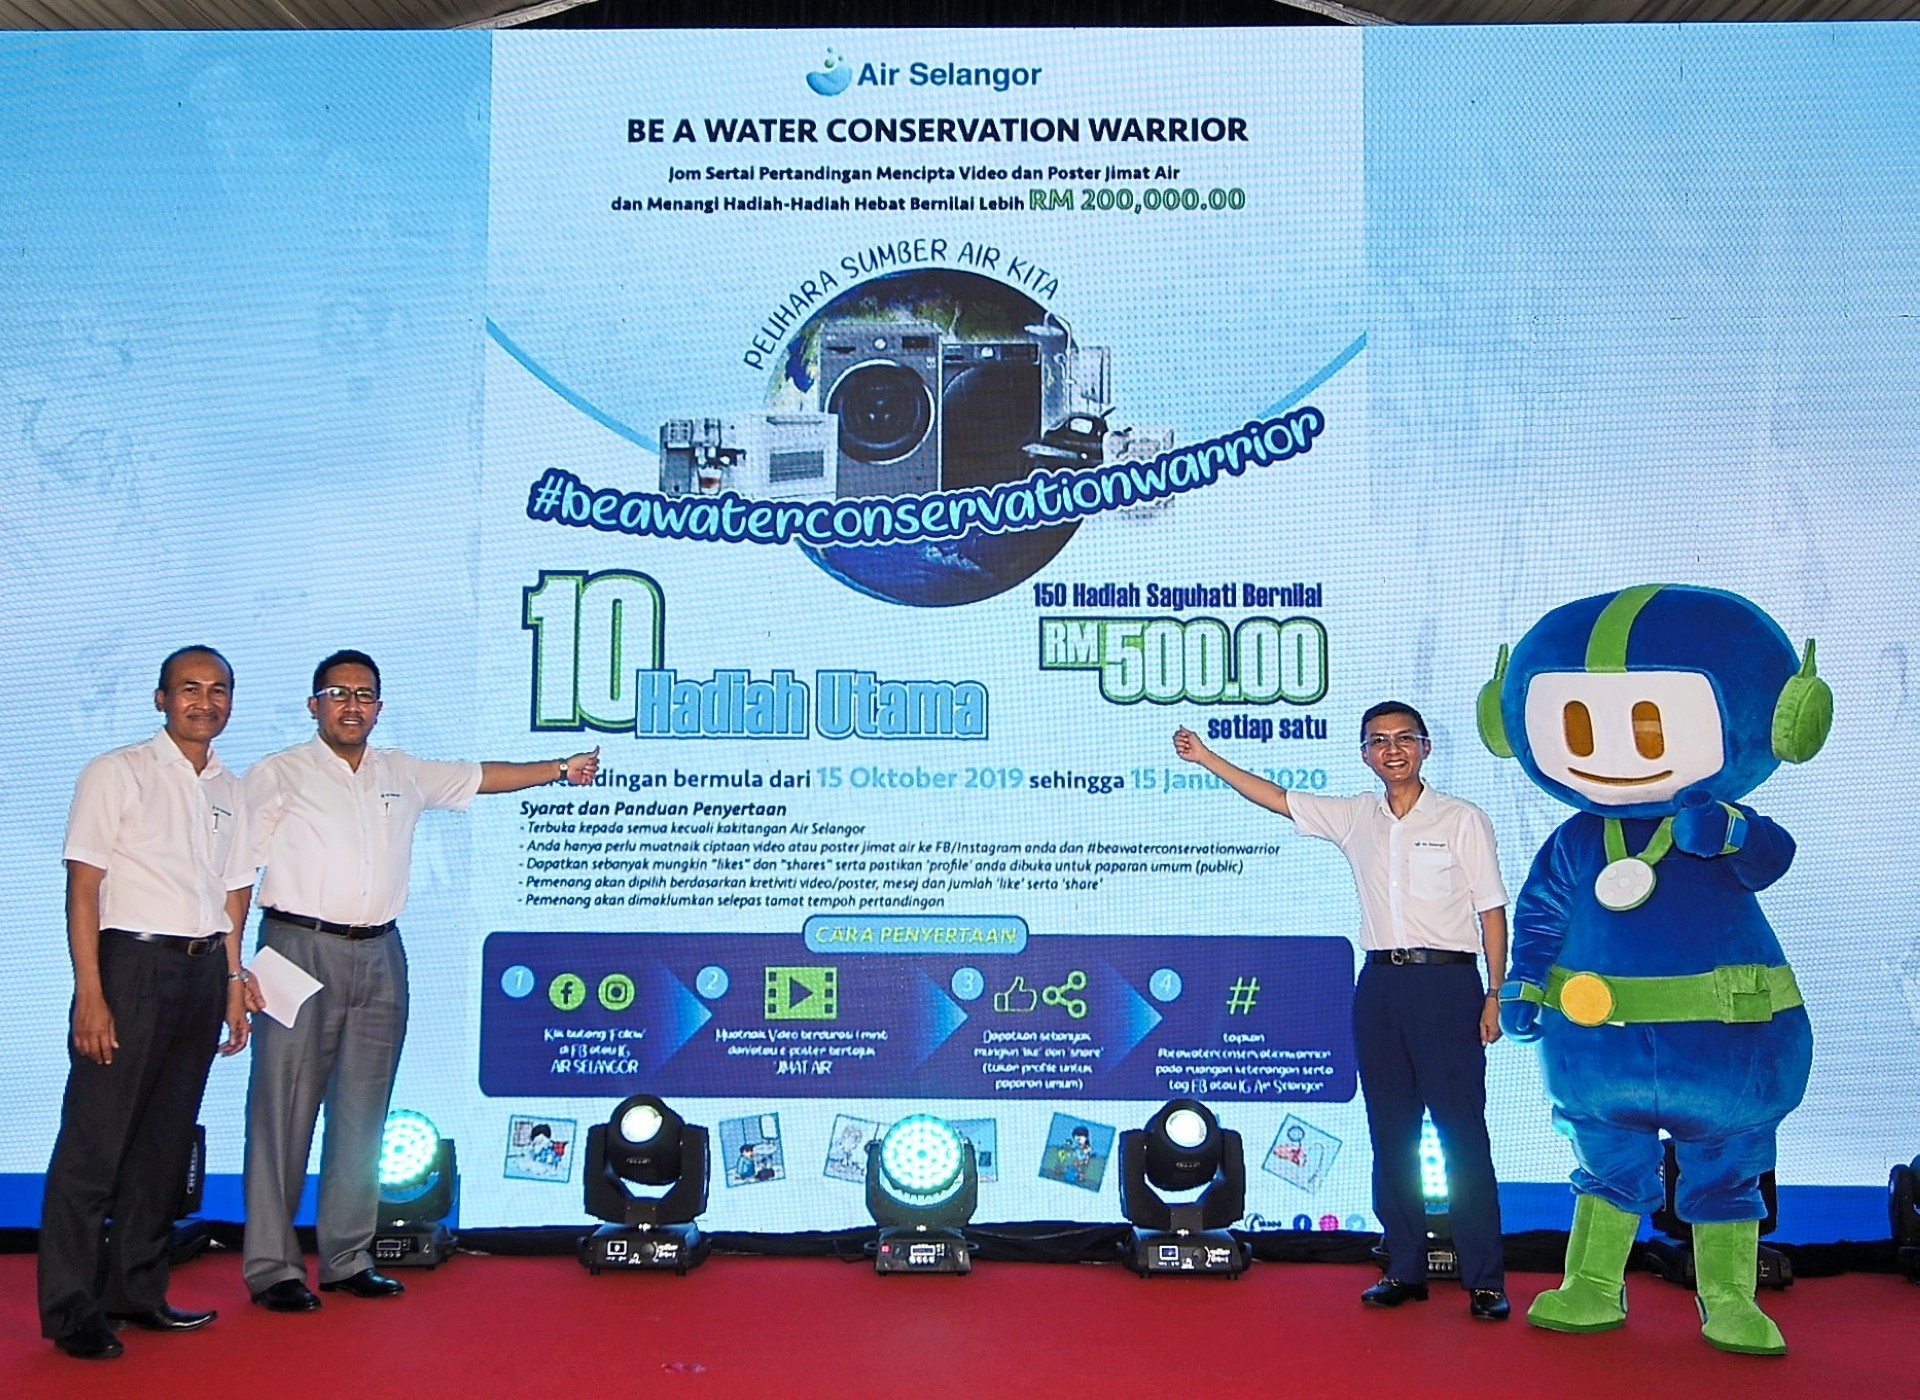 (From left) Air Selangor customer billing services head Yusof Saroji, operations director/head Abas Abdullah, chief executive officer Suhaimi Kamaralzaman and Mat Bidal welcoming the public to join the Be A Water Conservation Warrior contest. — Photos: AZLINA ABDULLAH/The Star